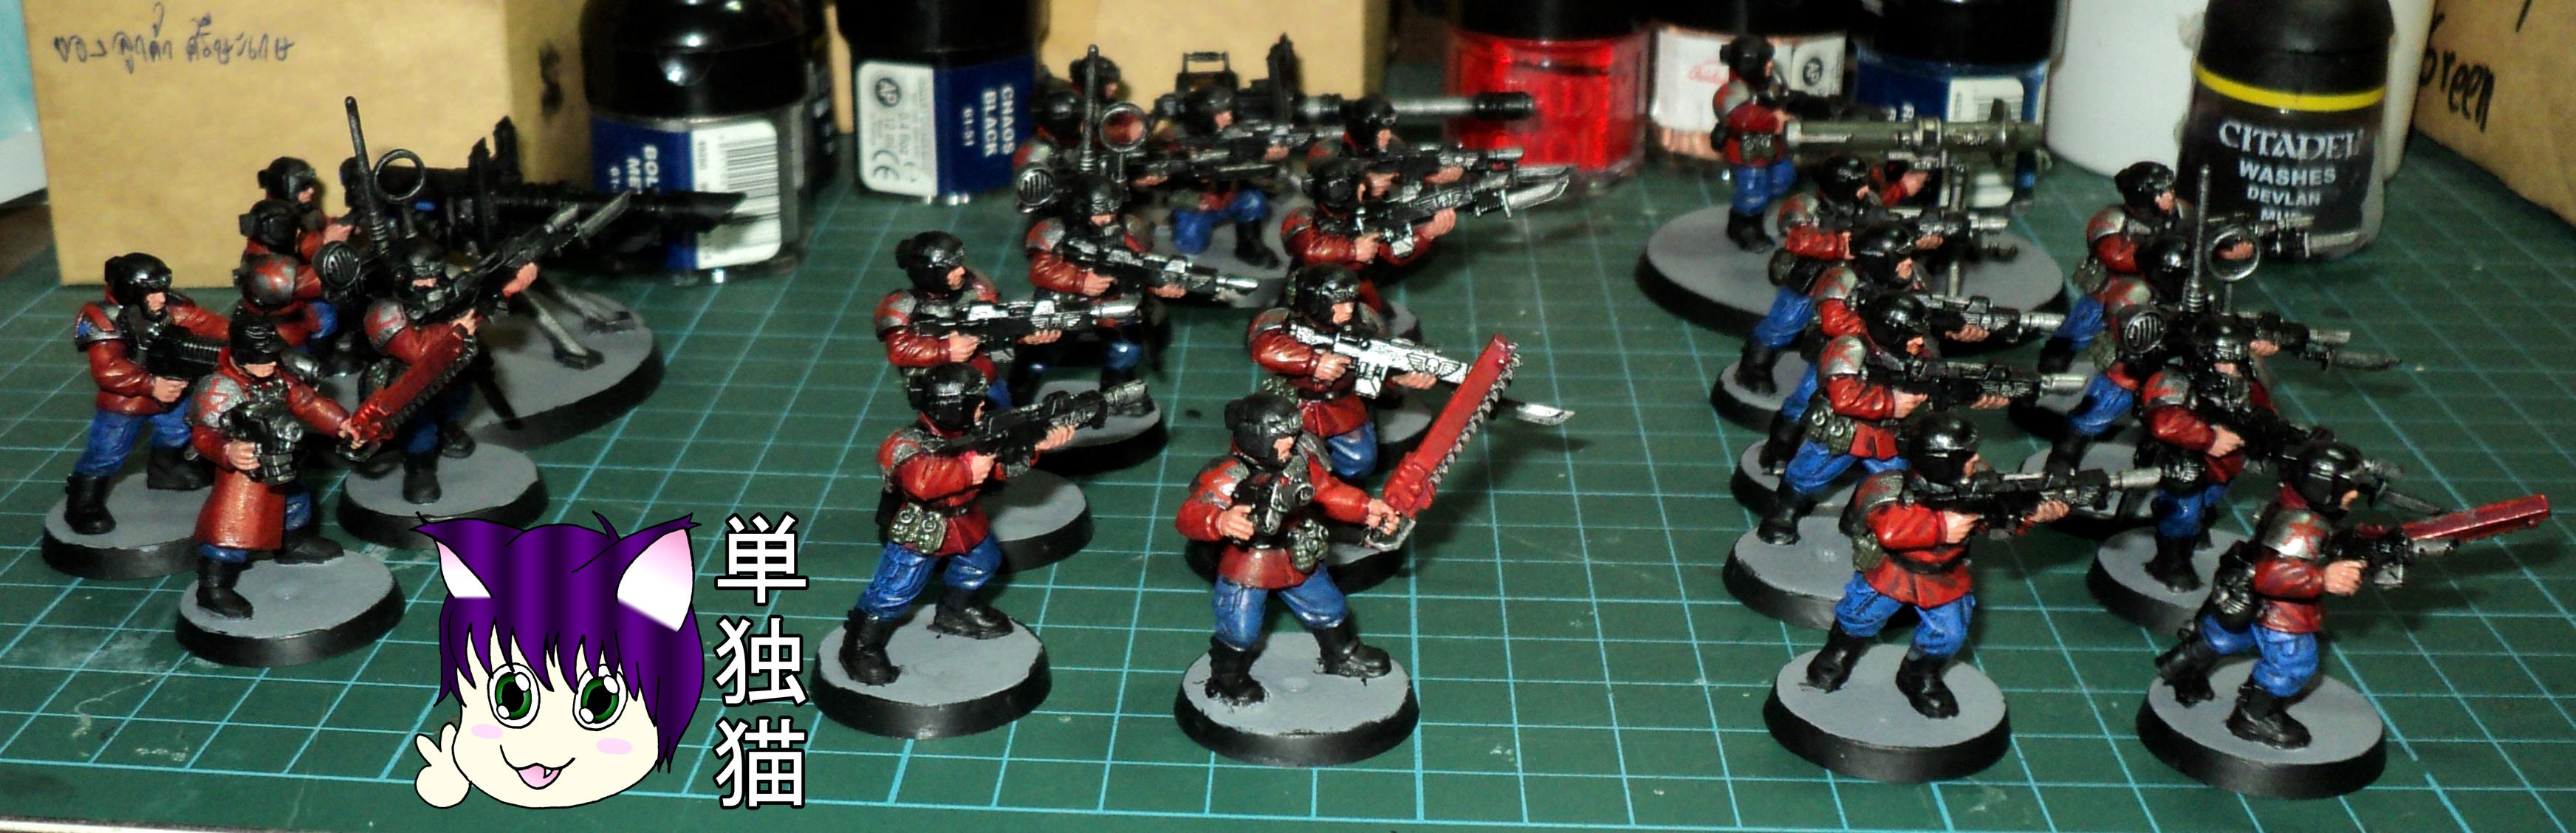 Imperial Guard, Lone Cat, Platoon, Red Shirts